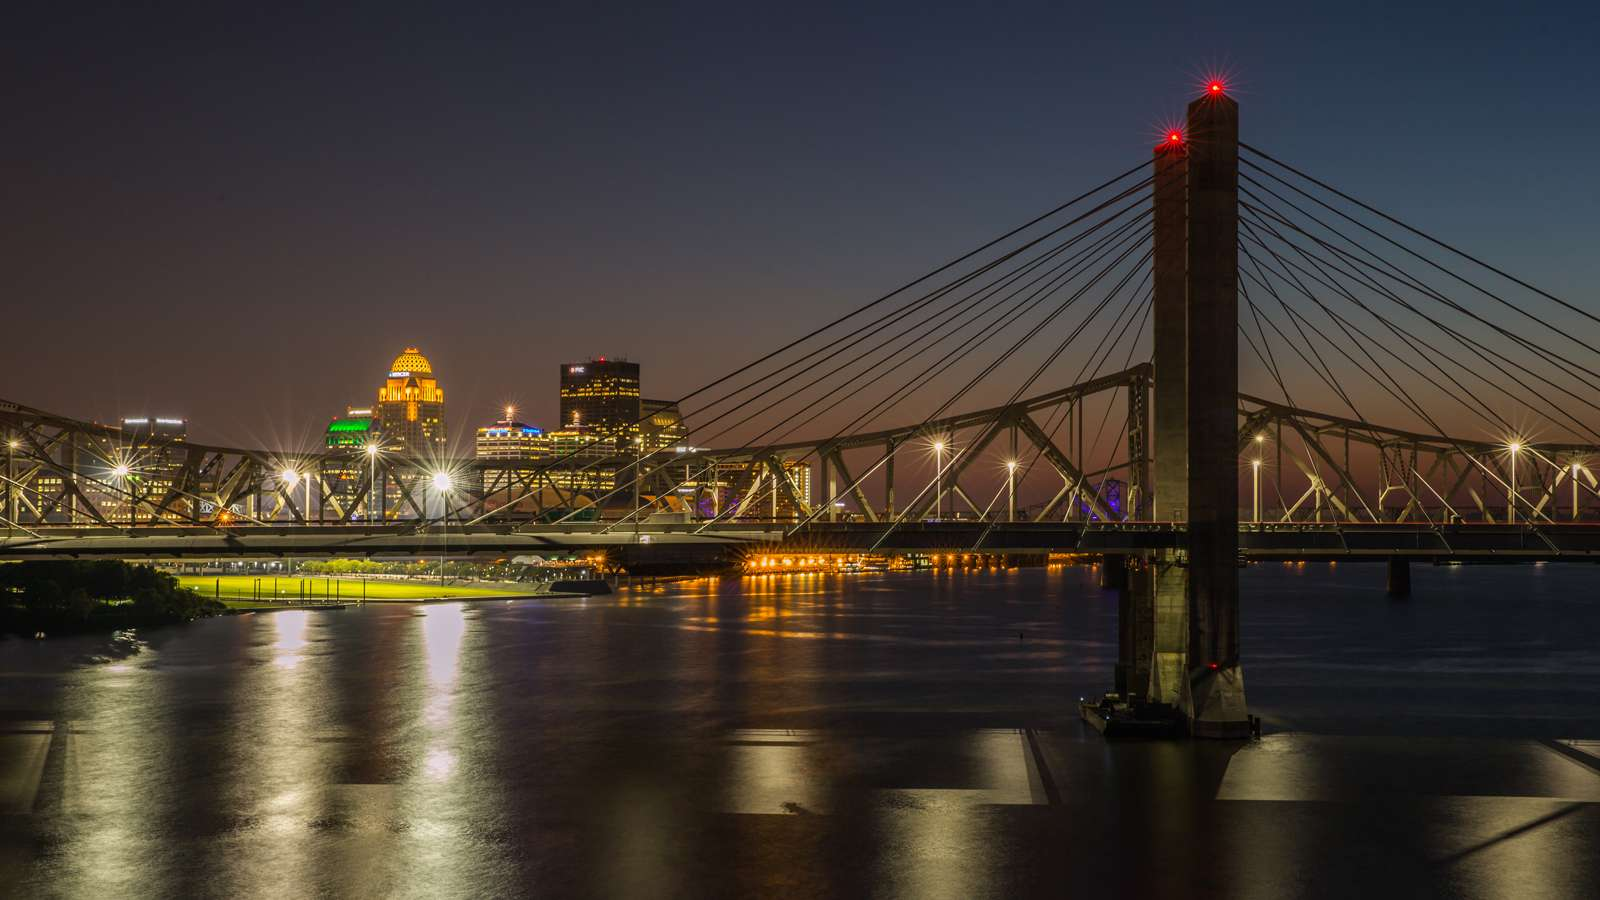 Showing the bridge downtown Louisville at night